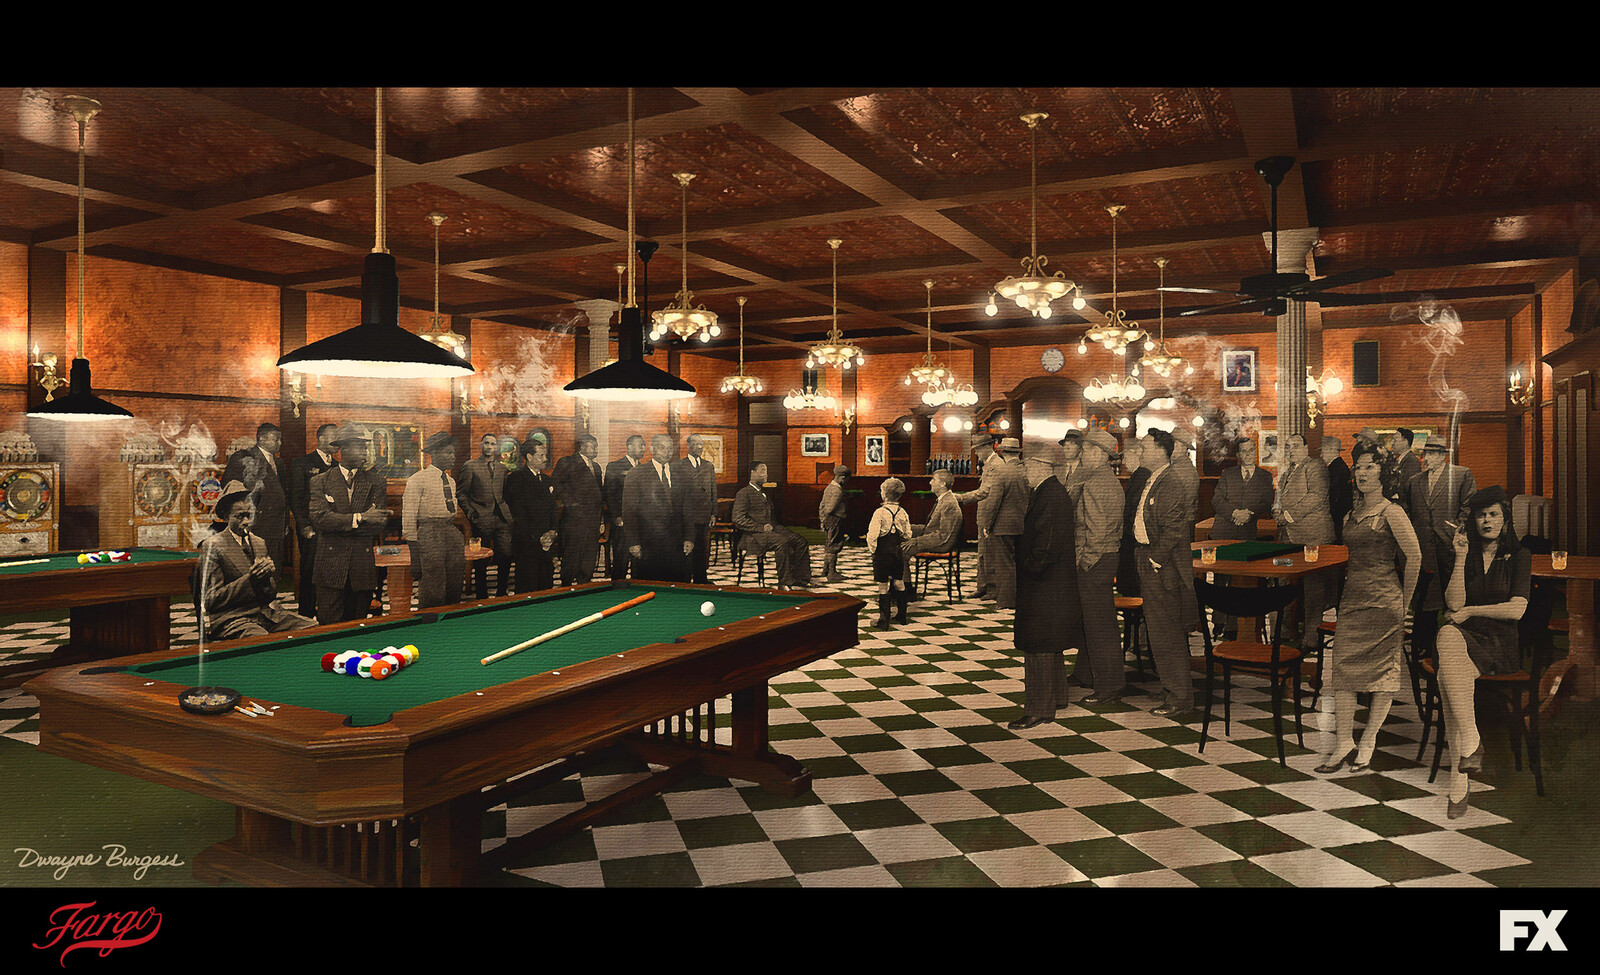 Fargo Season 4 - Jackson Democratic Club Interiors